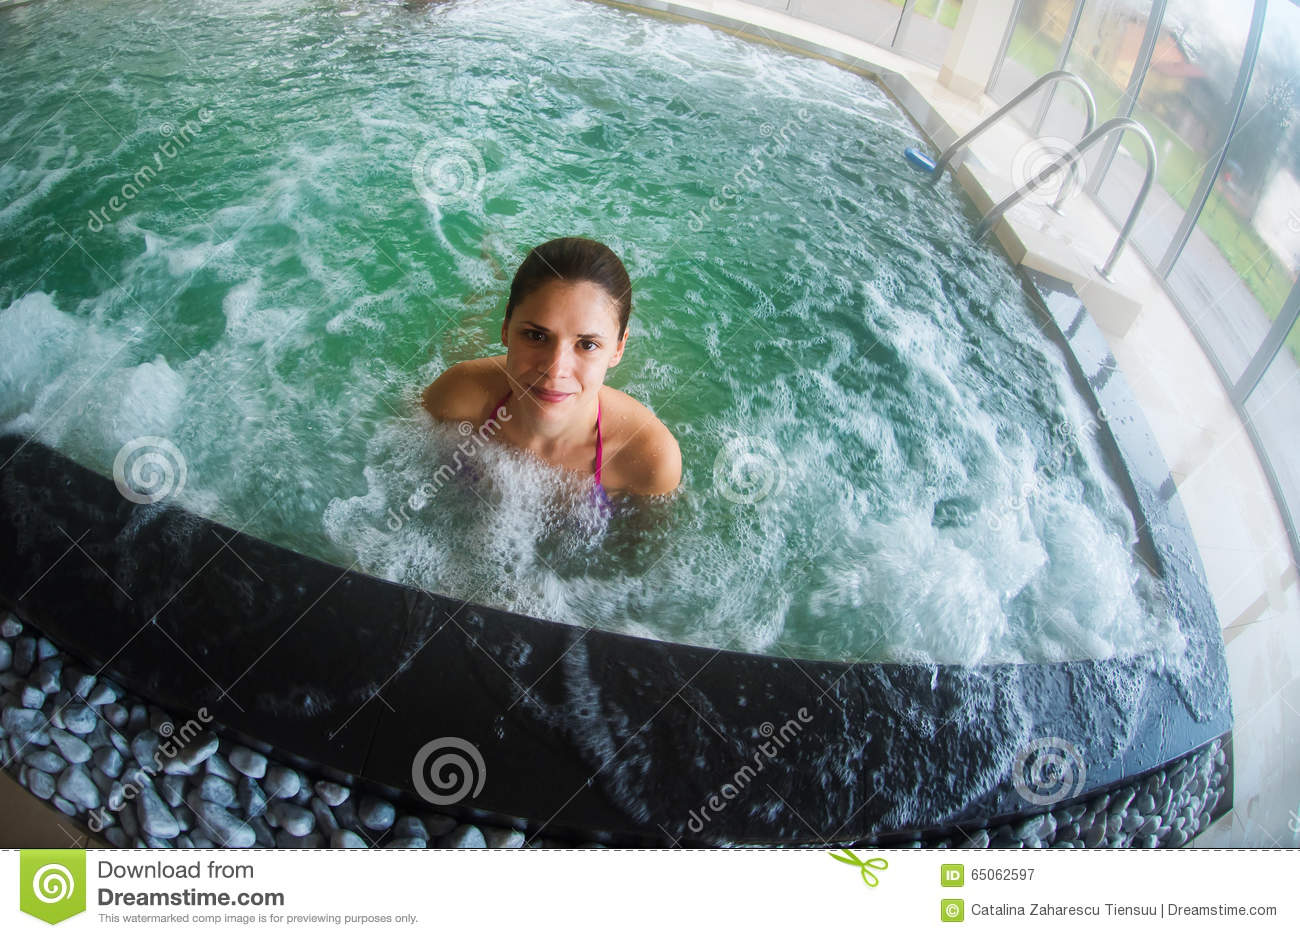 Jacuzzi Pool Jet Young Woman Relaxing In An Indoor Pool Stock Image Image